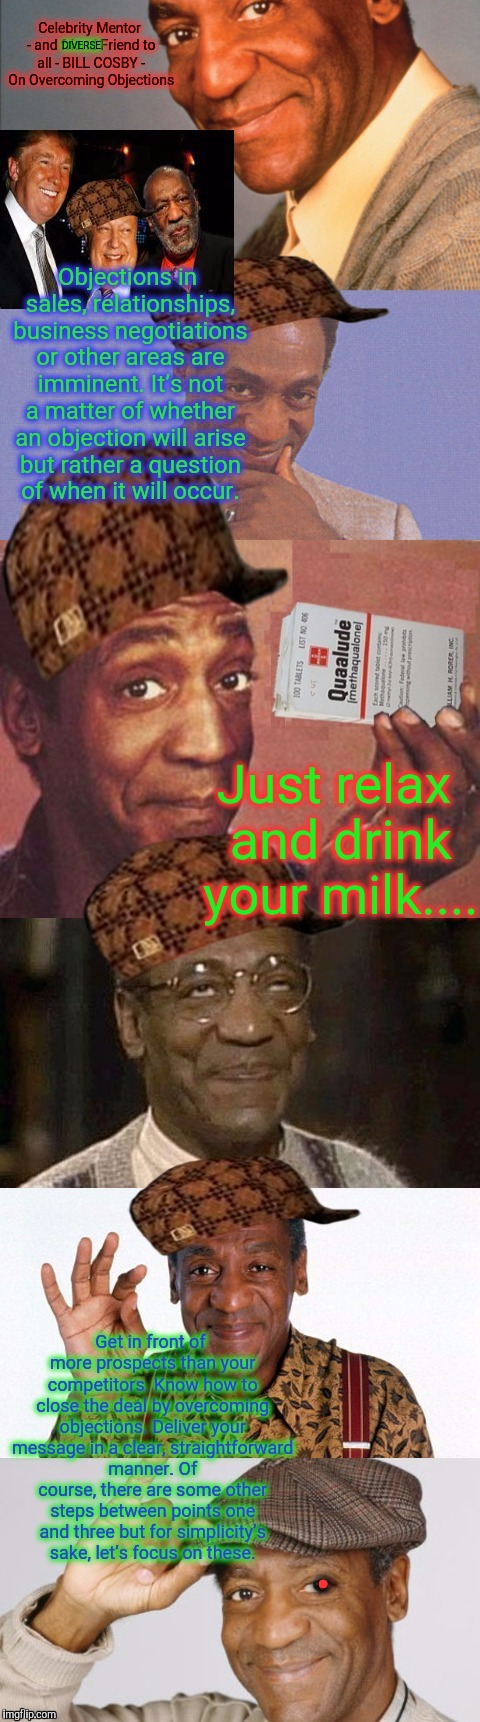 DIVERSE Just relax and drink your milk.... . | made w/ Imgflip meme maker